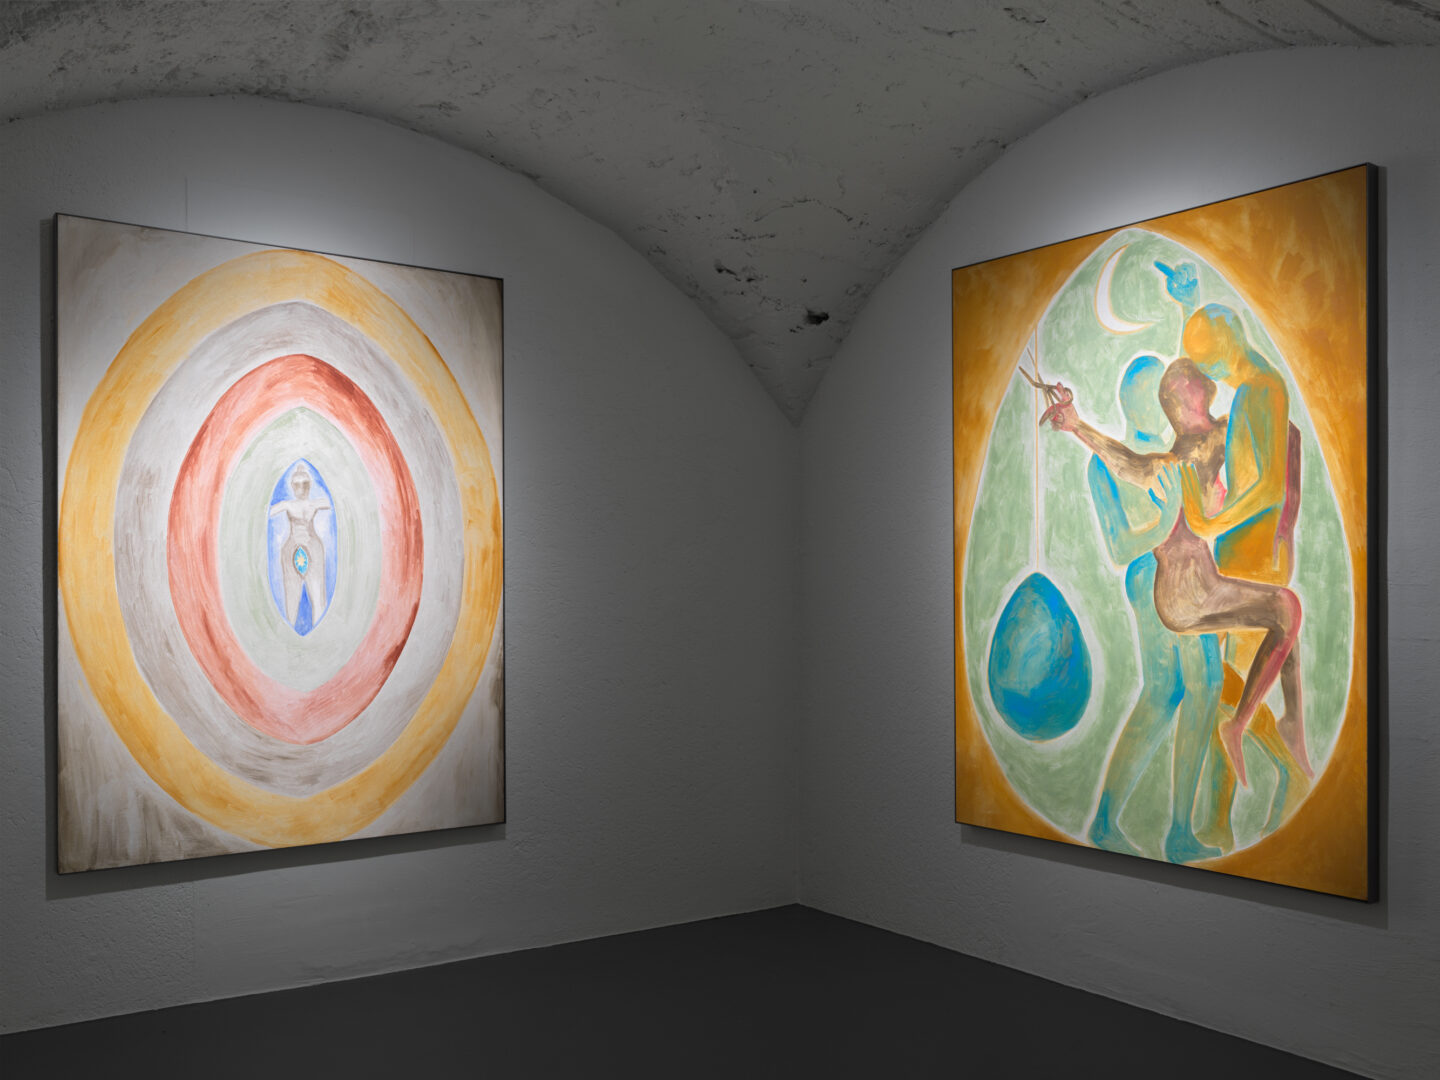 Exhibition View Francesco Clemente Soloshow «Clouds; view on Aspects of the Moon VIII, 2019 and  Aspects of the Moon III, 2019» at Vito Schnabel Gallery, St. Moritz, 2019 / © Francesco Clemente / Photo by Stefan Altenburger / Courtesy: the artist and Vito Schnabel Gallery